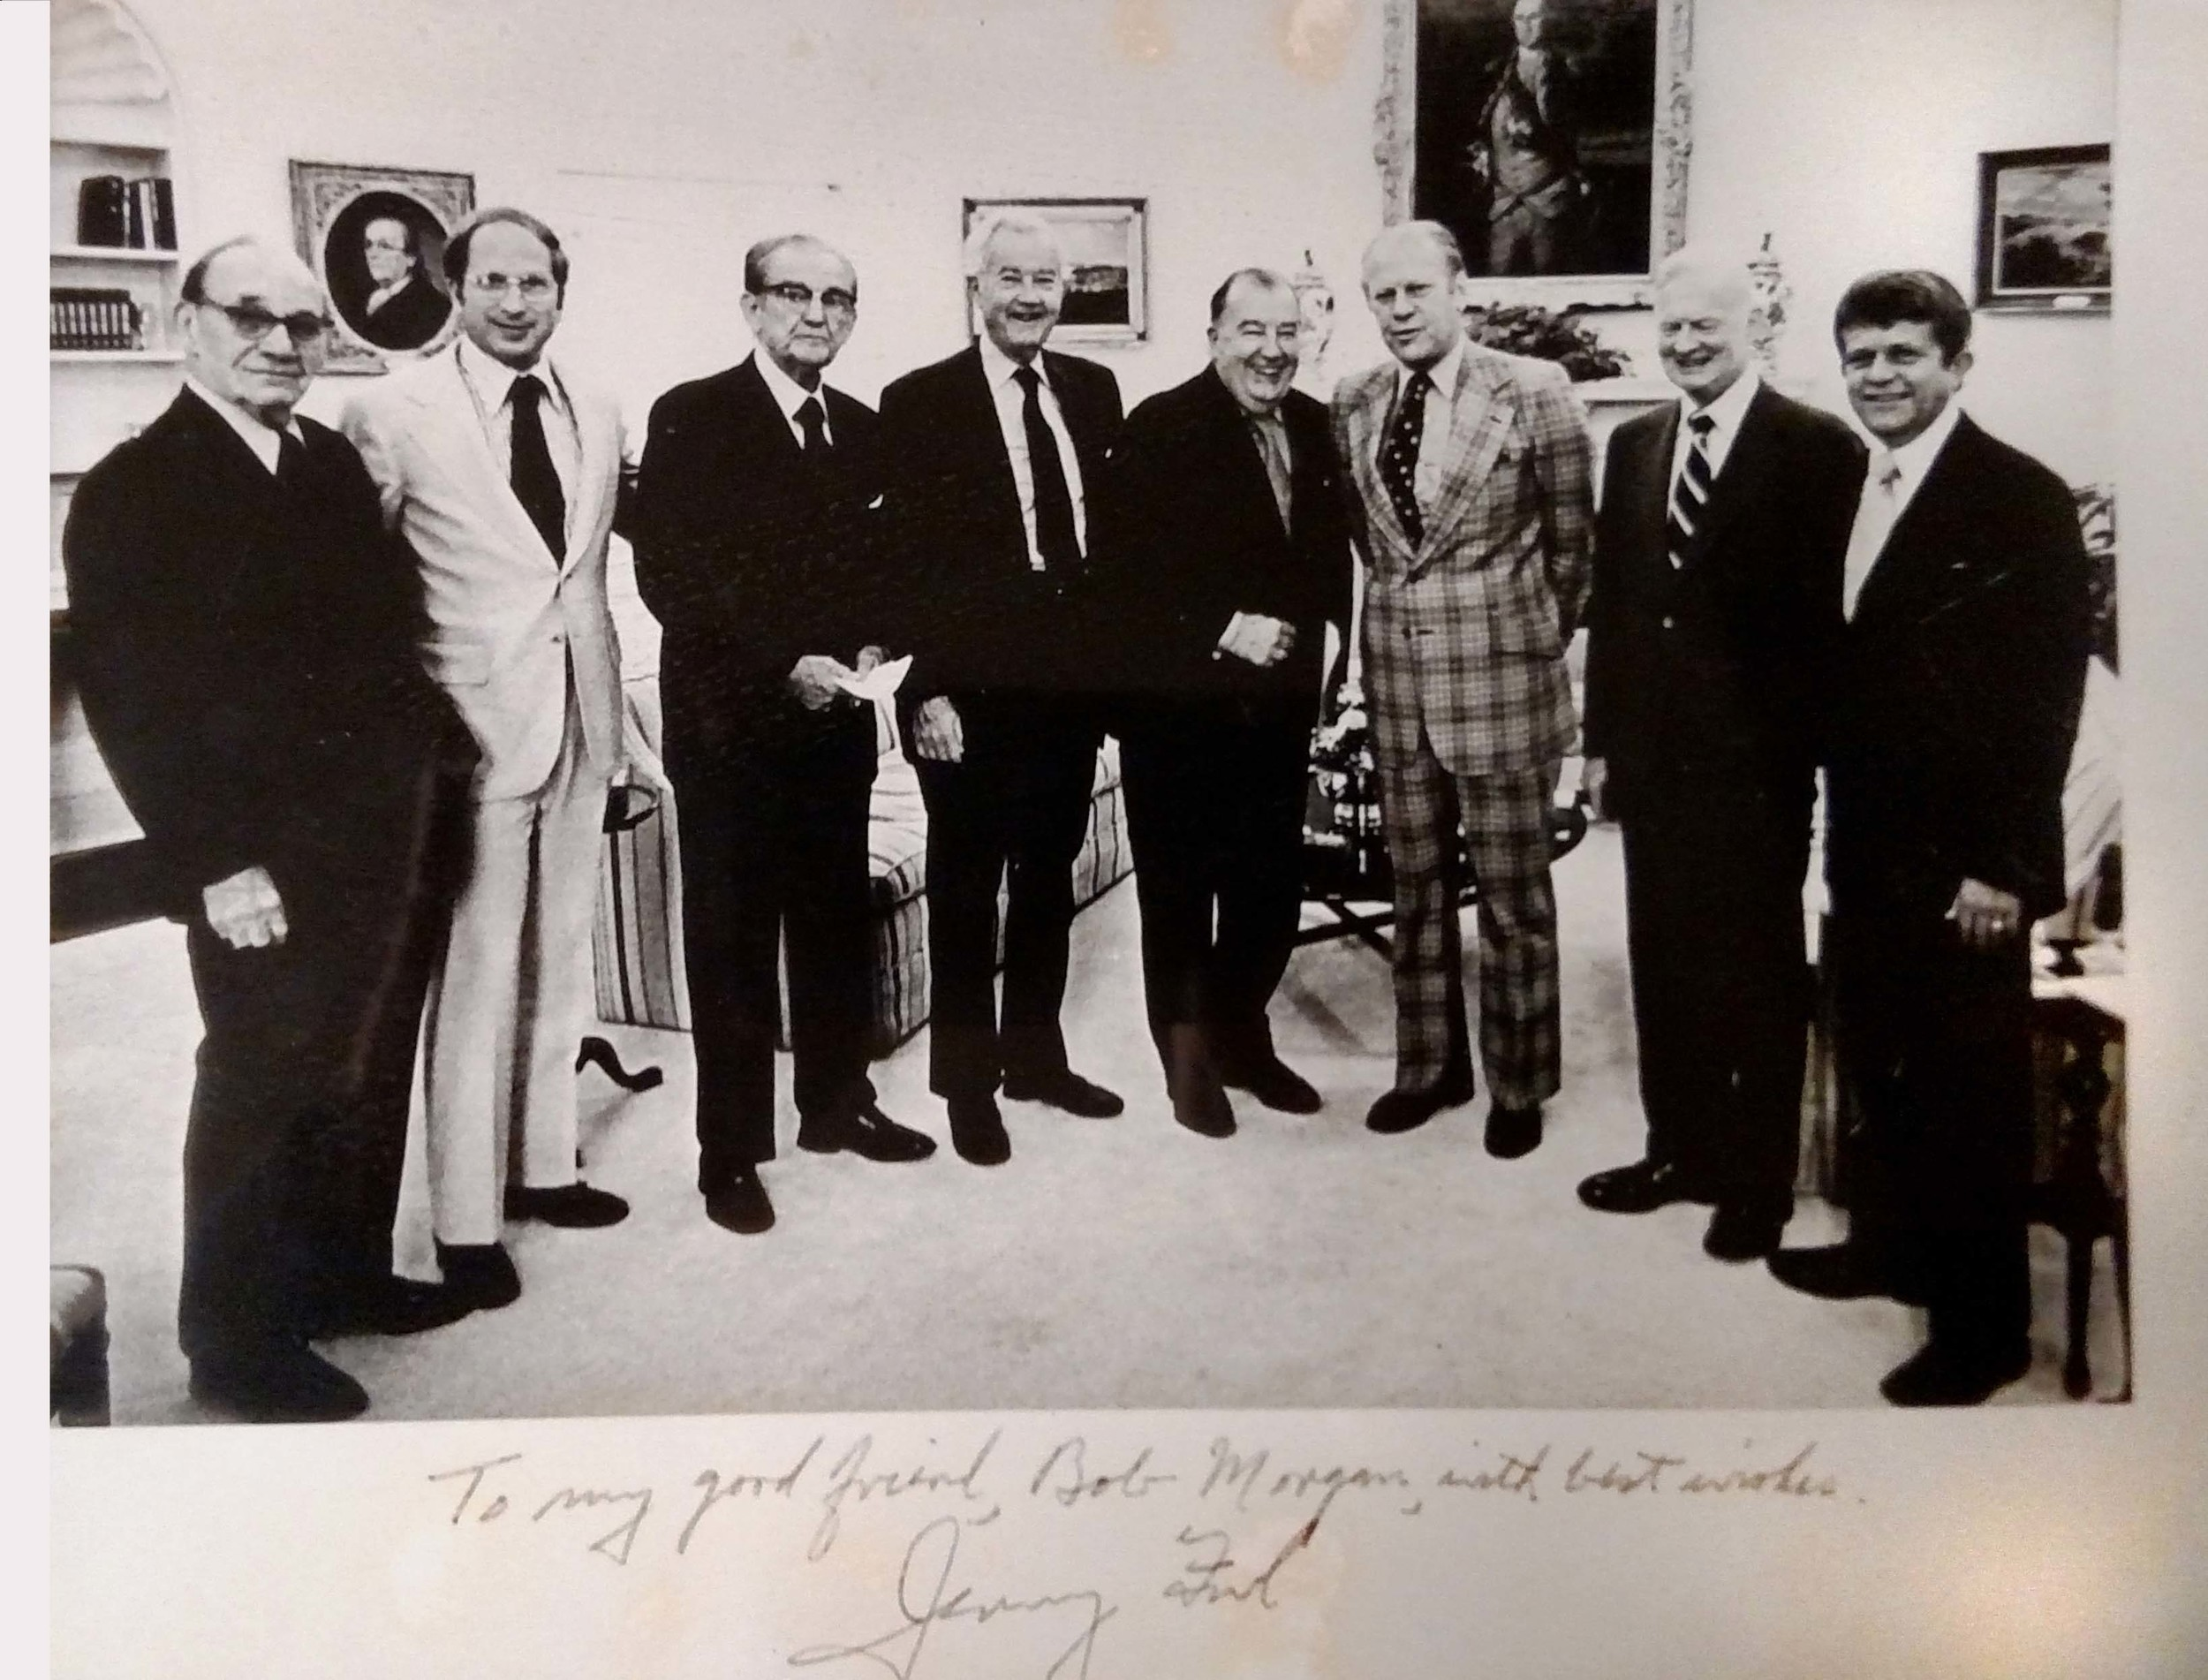 Robert Morgan with President Gerald Ford and others